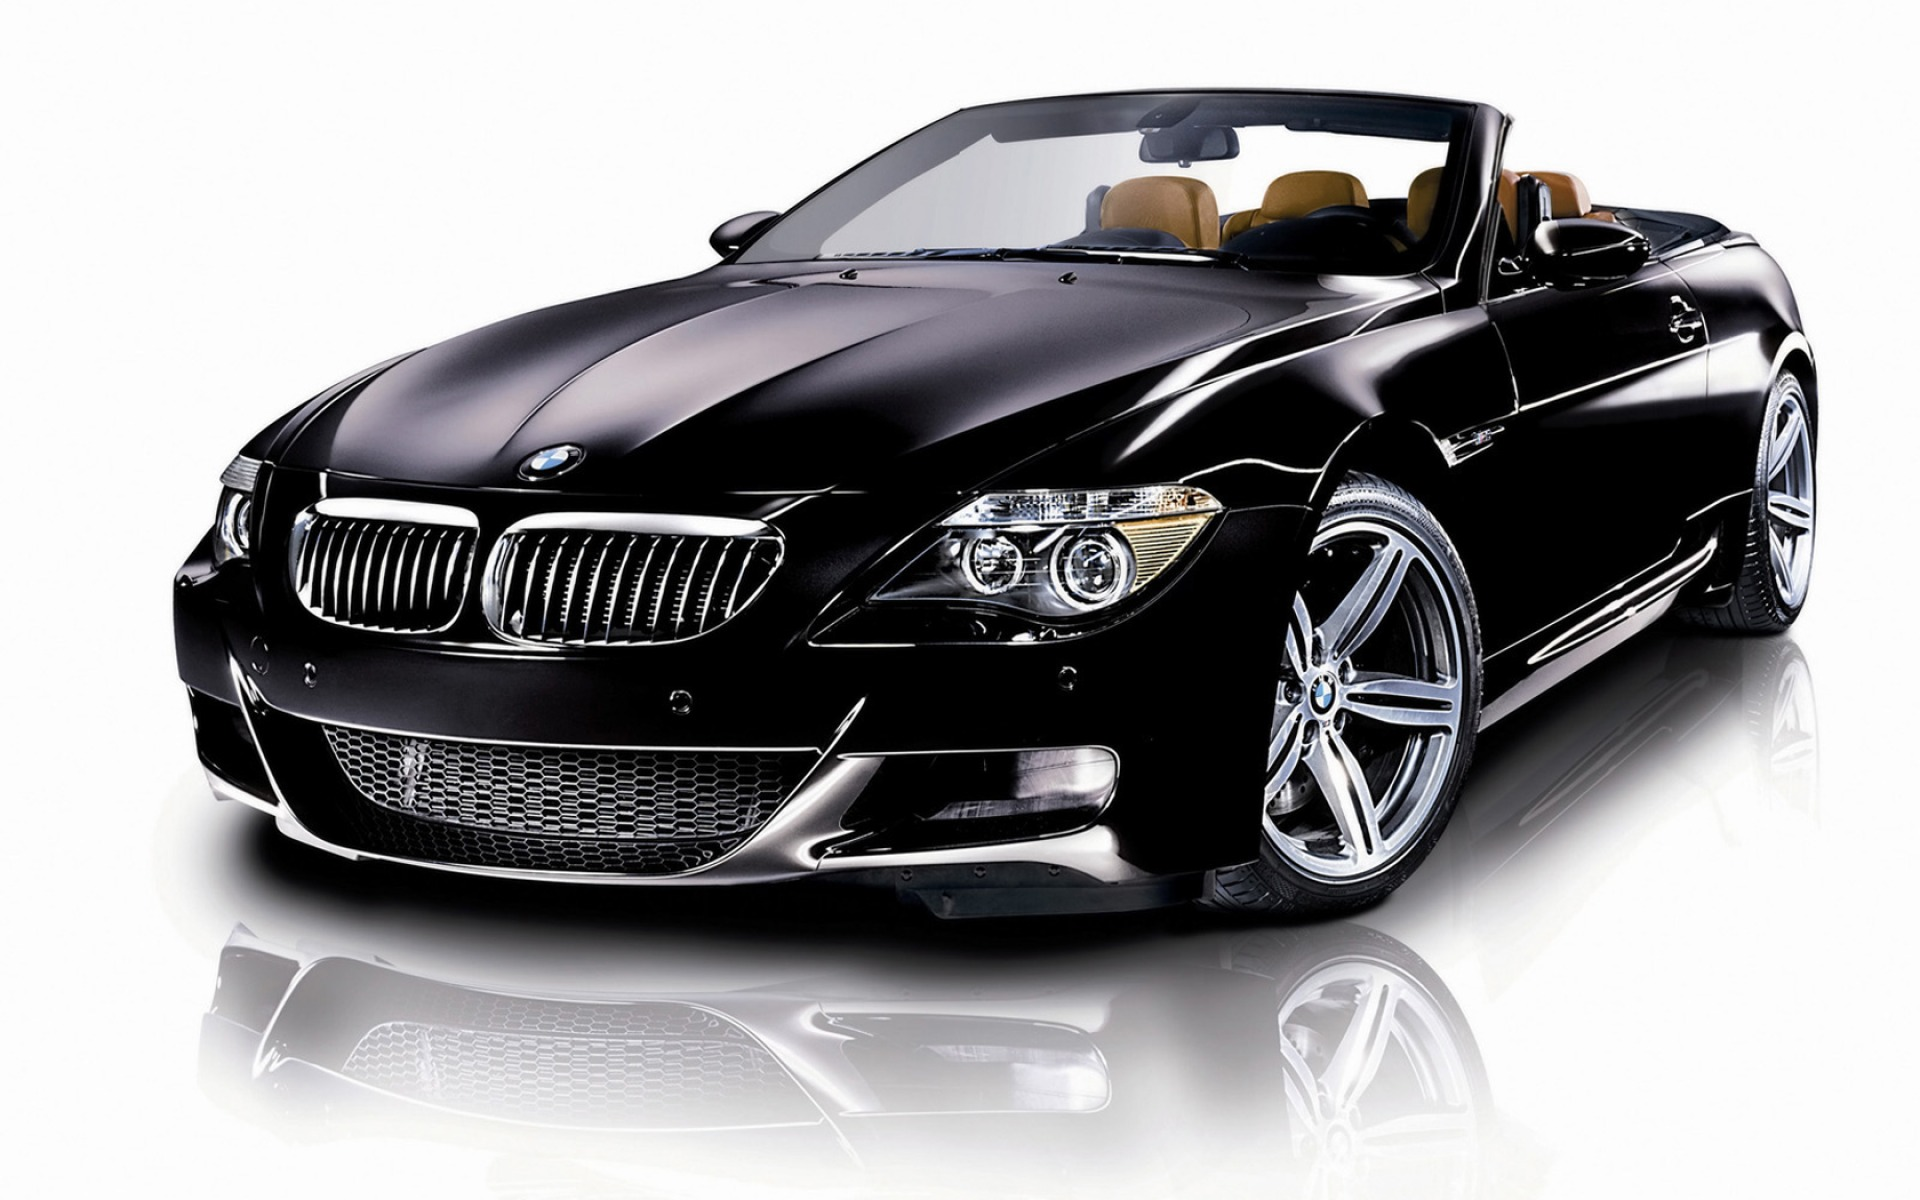 Ultrablogus  Unique Bmw Car Wallpaper Wallpapers For Free Download About   With Heavenly Bmw M Convertible Wallpaper Bmw Cars With Comely  Hyundai Elantra Interior Also Bmw  Series  Interior In Addition Ford Super Duty Interior Parts And Gmc Yukon Denali Interior As Well As  King Ranch Interior Additionally Jeep Wrangler Interior  From Allfreedownloadcom With Ultrablogus  Heavenly Bmw Car Wallpaper Wallpapers For Free Download About   With Comely Bmw M Convertible Wallpaper Bmw Cars And Unique  Hyundai Elantra Interior Also Bmw  Series  Interior In Addition Ford Super Duty Interior Parts From Allfreedownloadcom